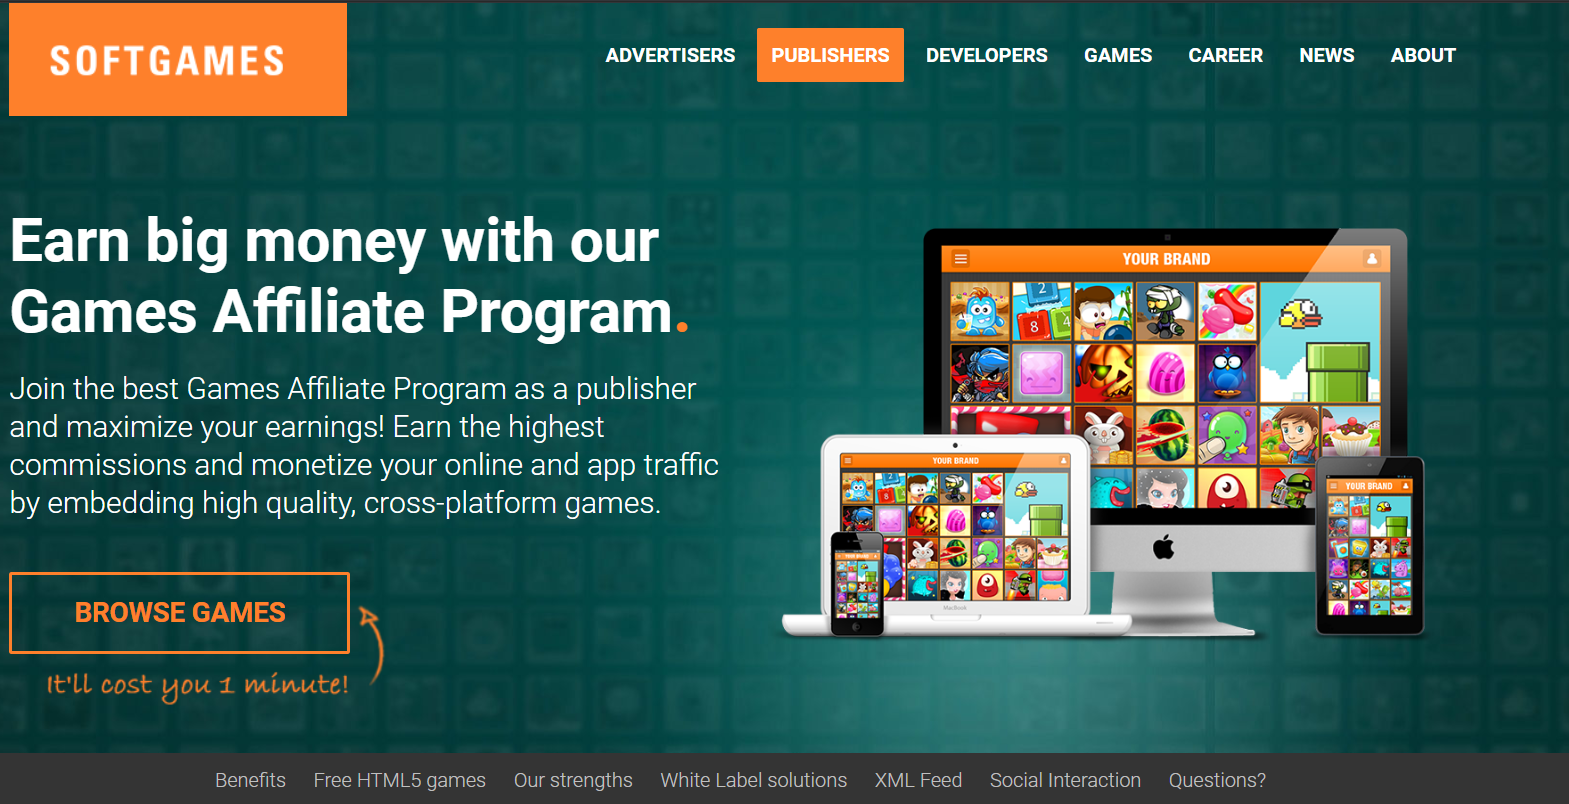 Soft Games have an HTML 5 Gaming affiliate program. This is a screenshot of their partner page on the official website.